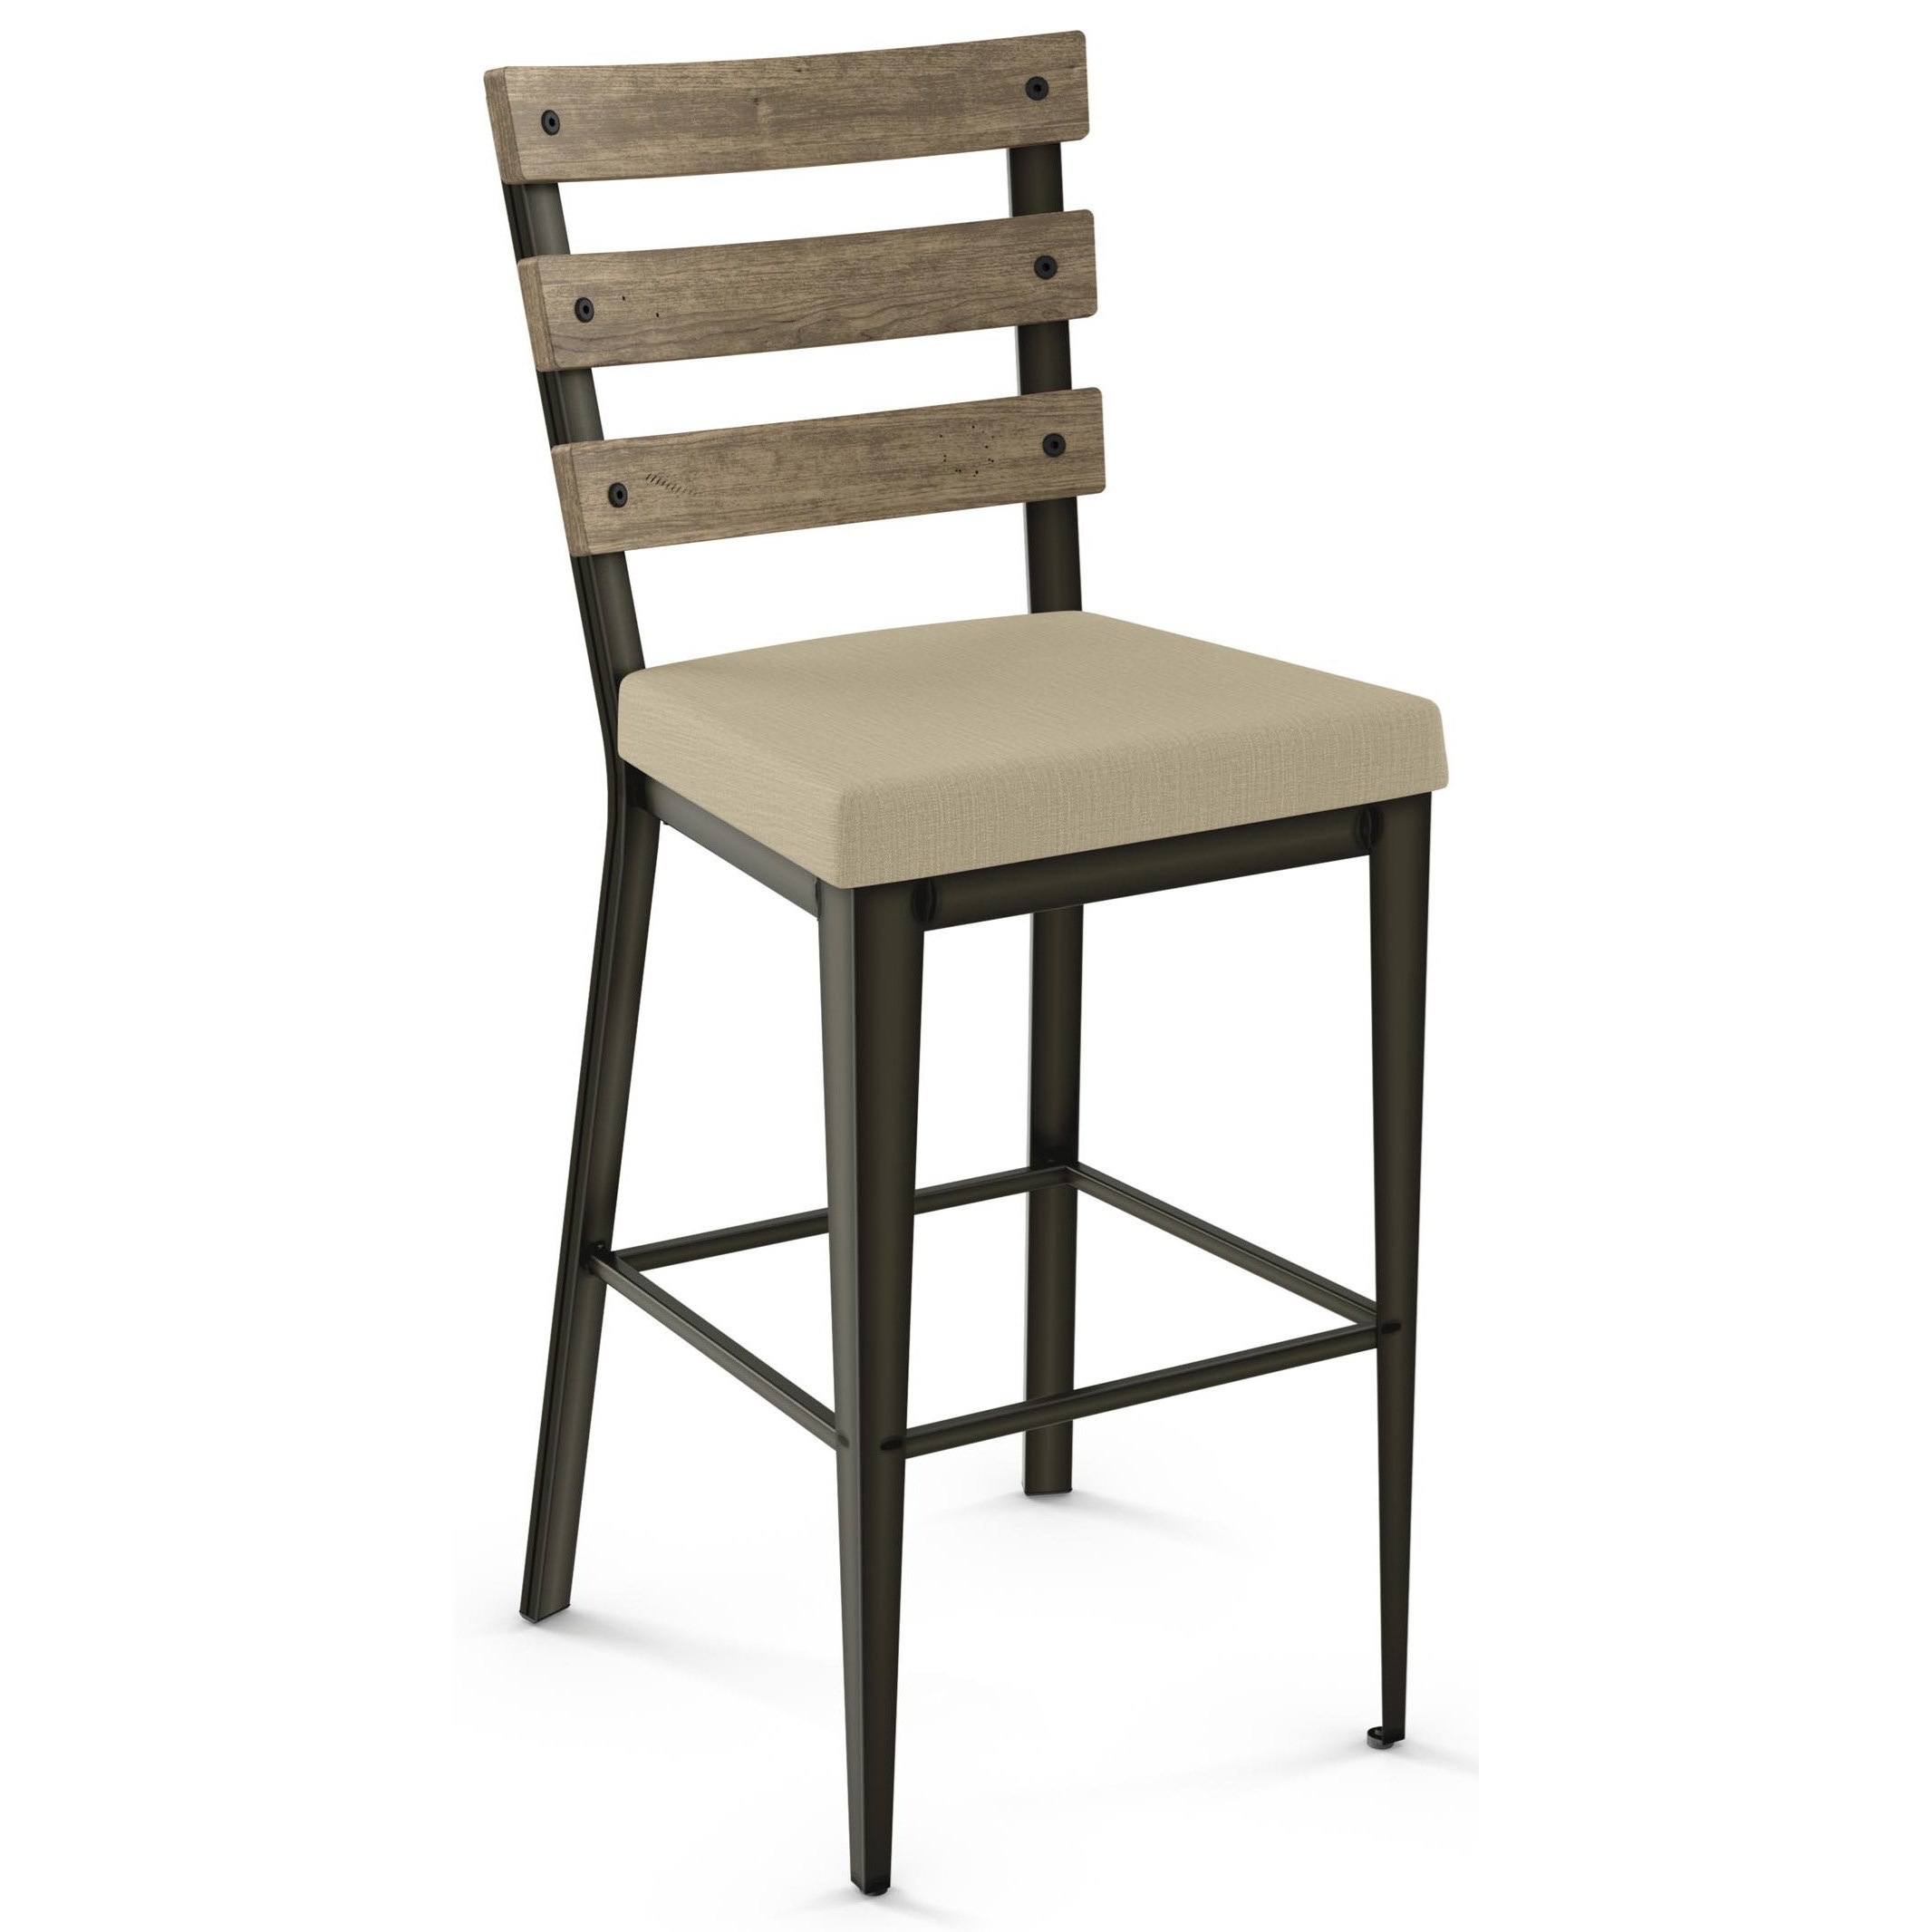 "Industrial 26"" Dexter Counter Stool w/ Upholstered Seat by Amisco at Johnny Janosik"